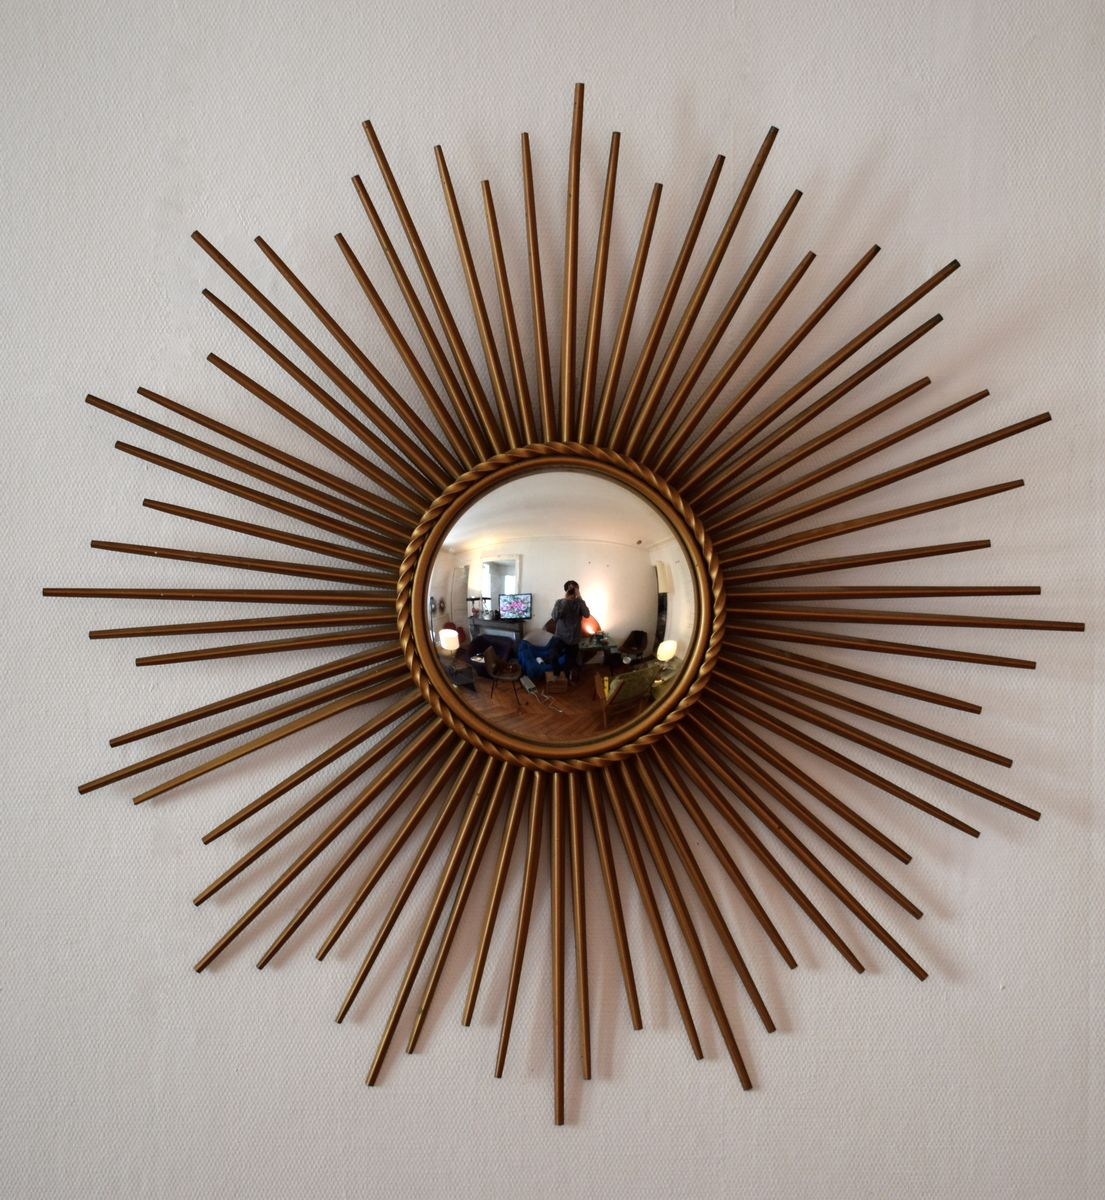 Mid century convex mirror from chaty vallauris for sale at for Chaty vallauris miroir